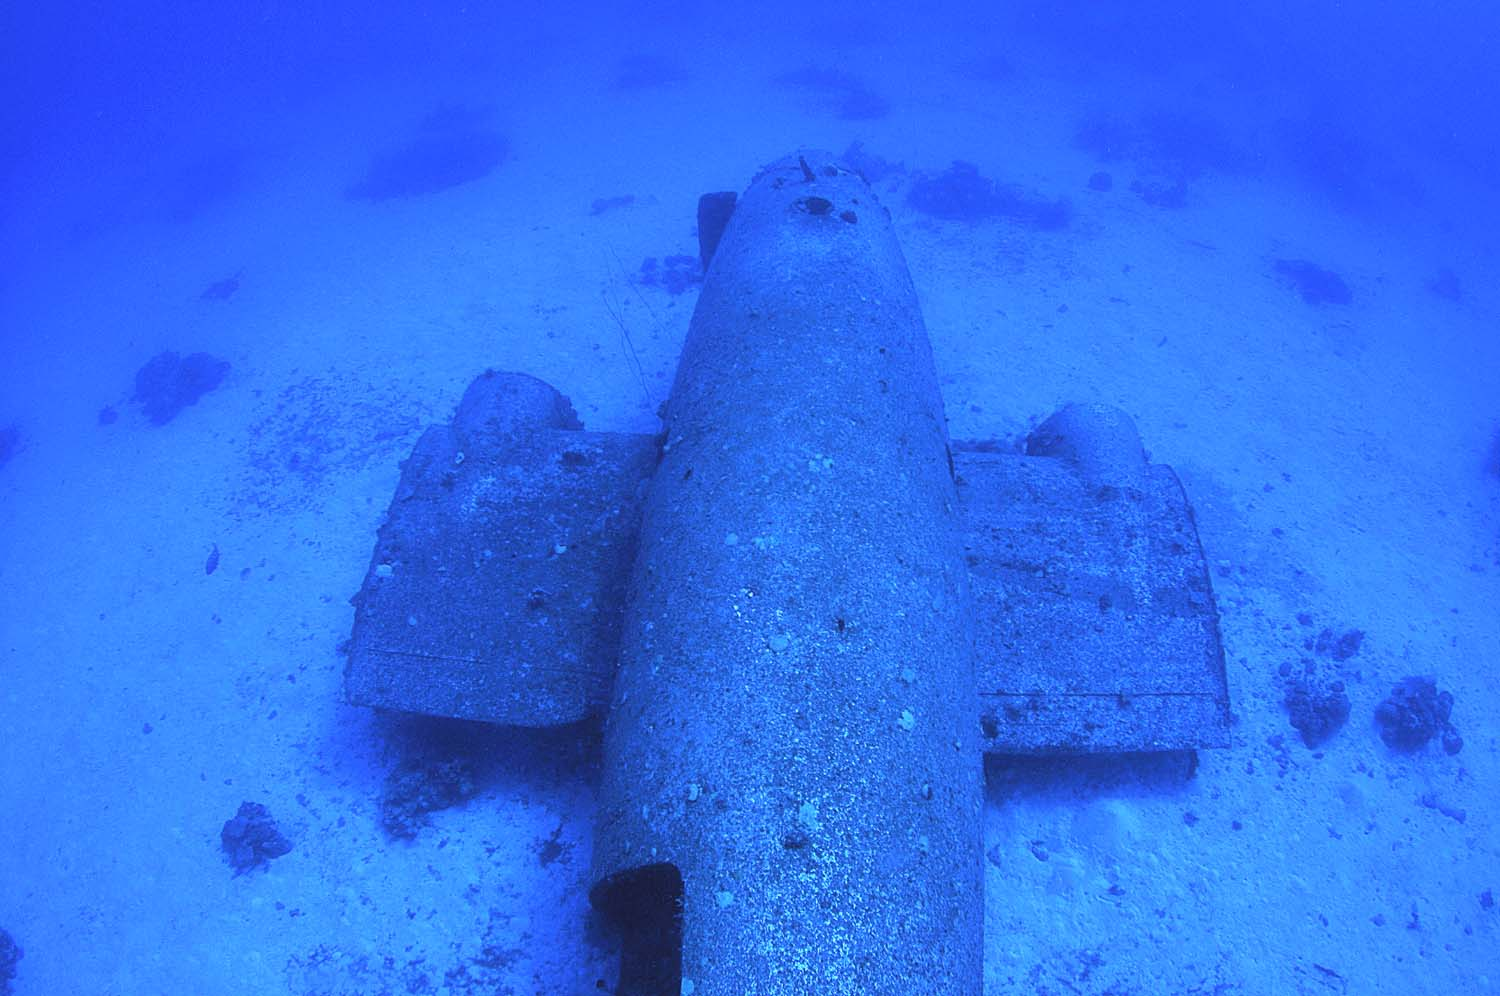 A view of the aircraft wreck's fuselage